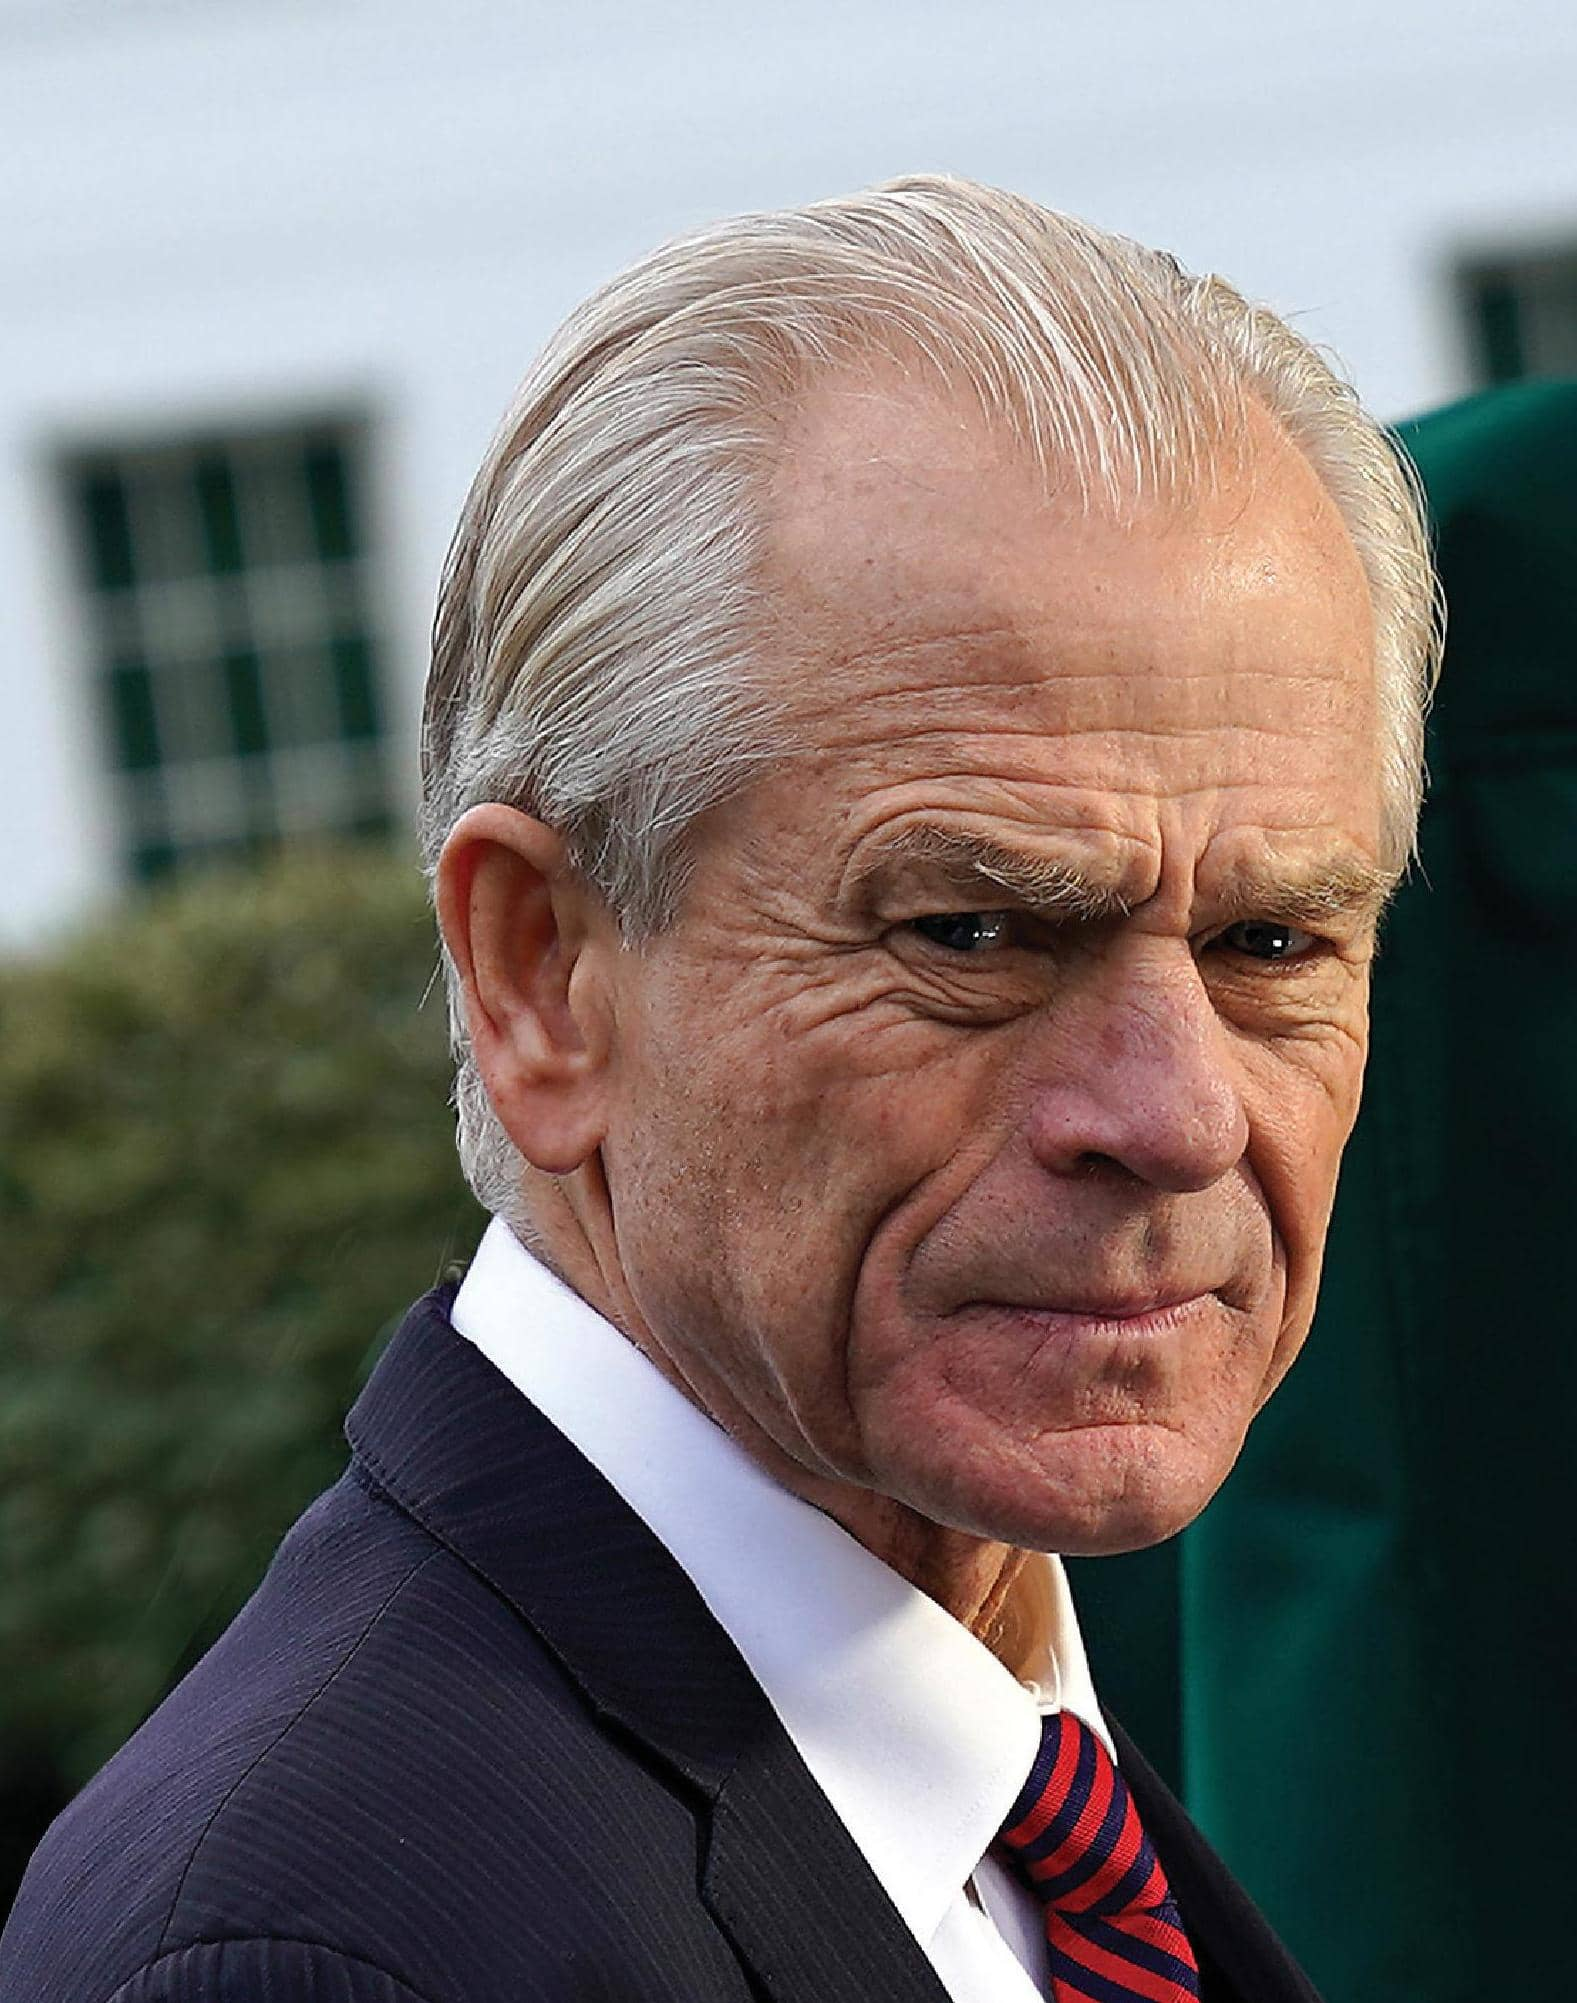 PETER NAVARRO'S NO-GOOD ECONOMIC NATIONALISM